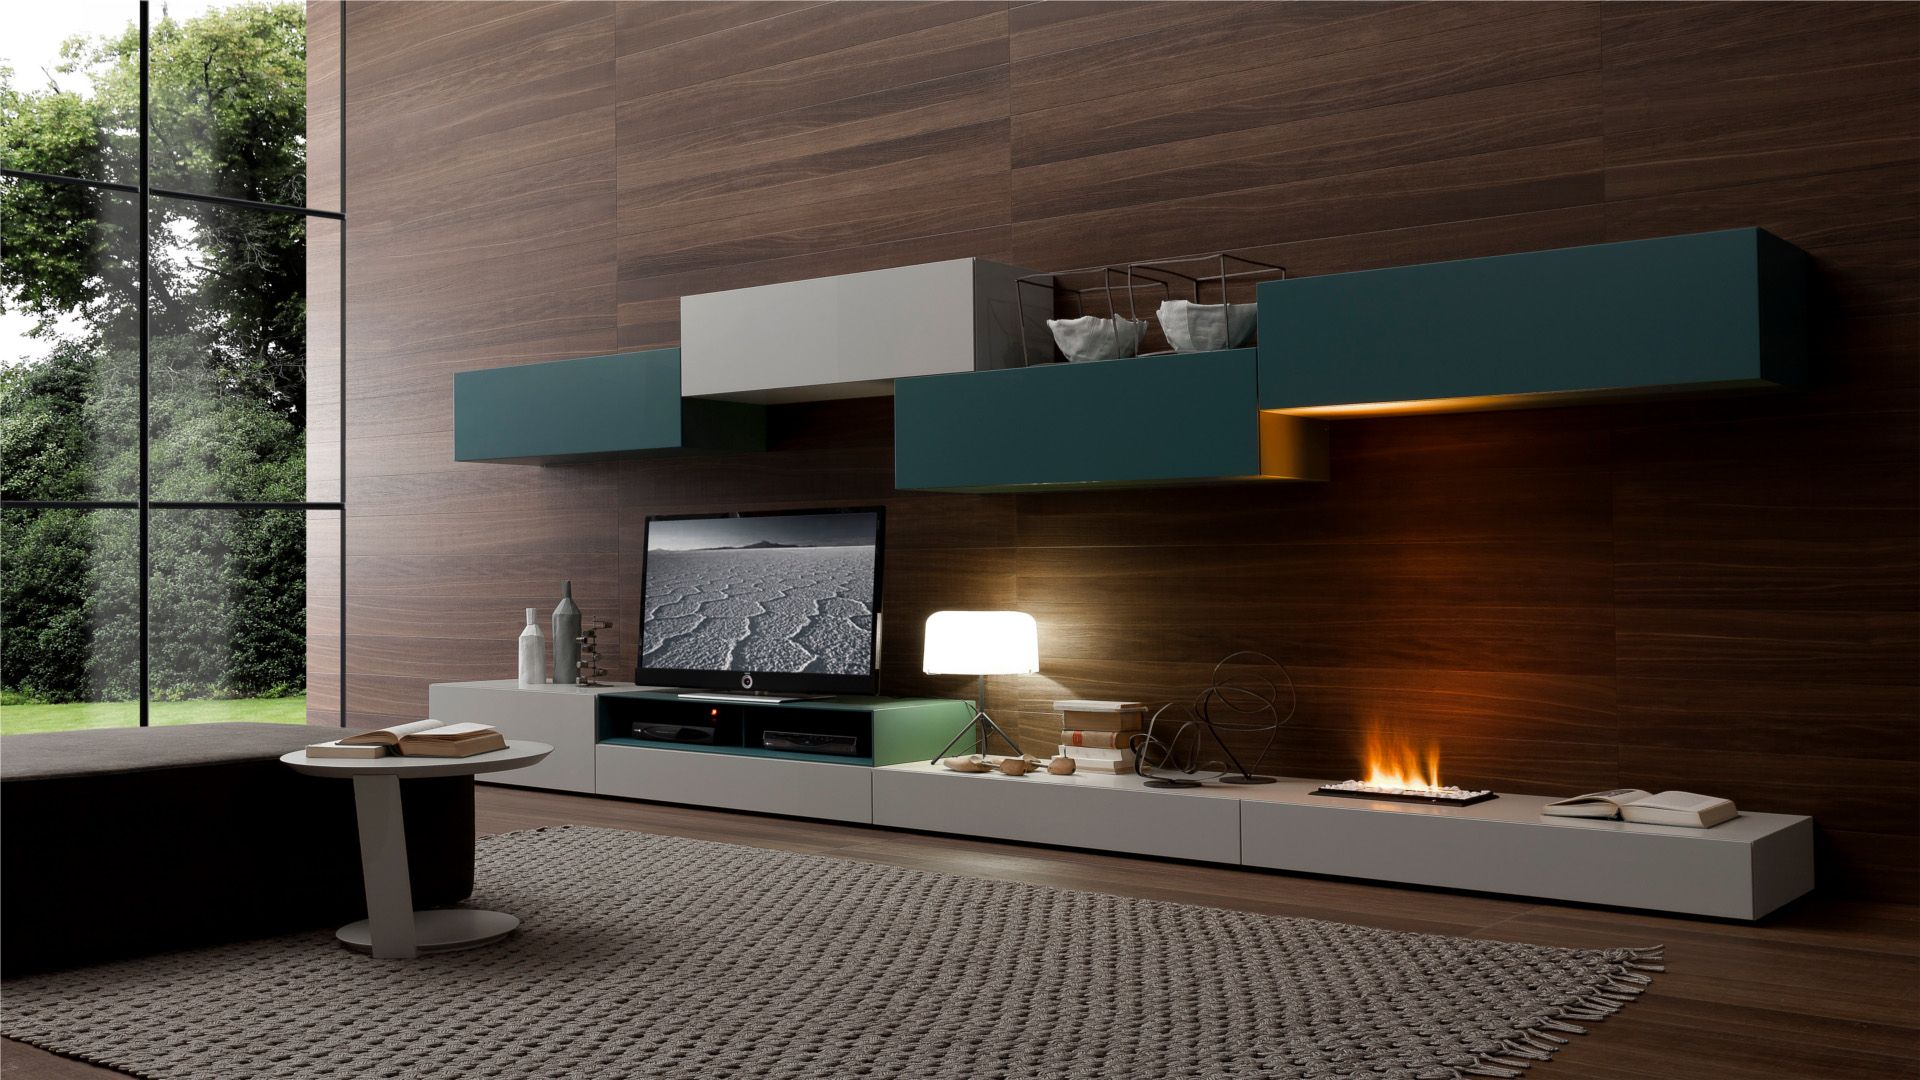 cozy rooms design with a modern fireplace ideas interior fireplace awesome indoor floating custom shelves low white wooden tv cabinet dark wood wall panels - Modern Wall Paneling Designs